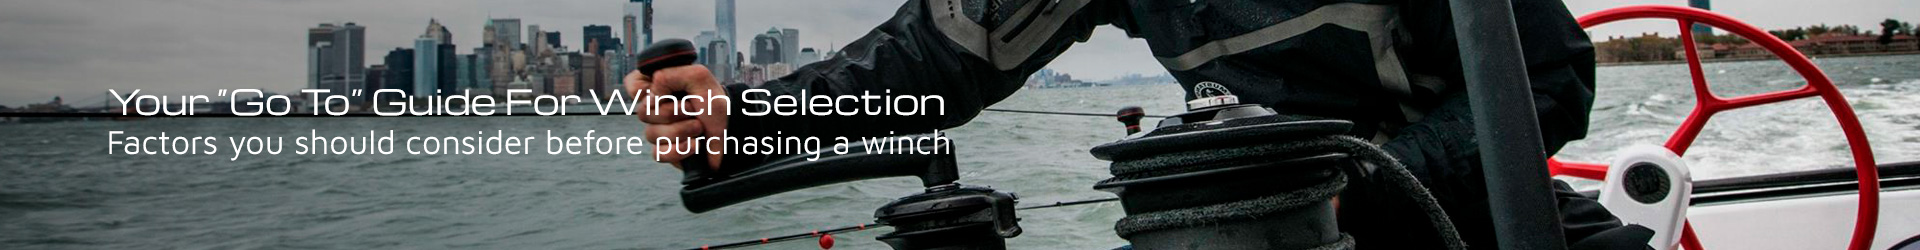 Discover your Go To guide for Winch selection!